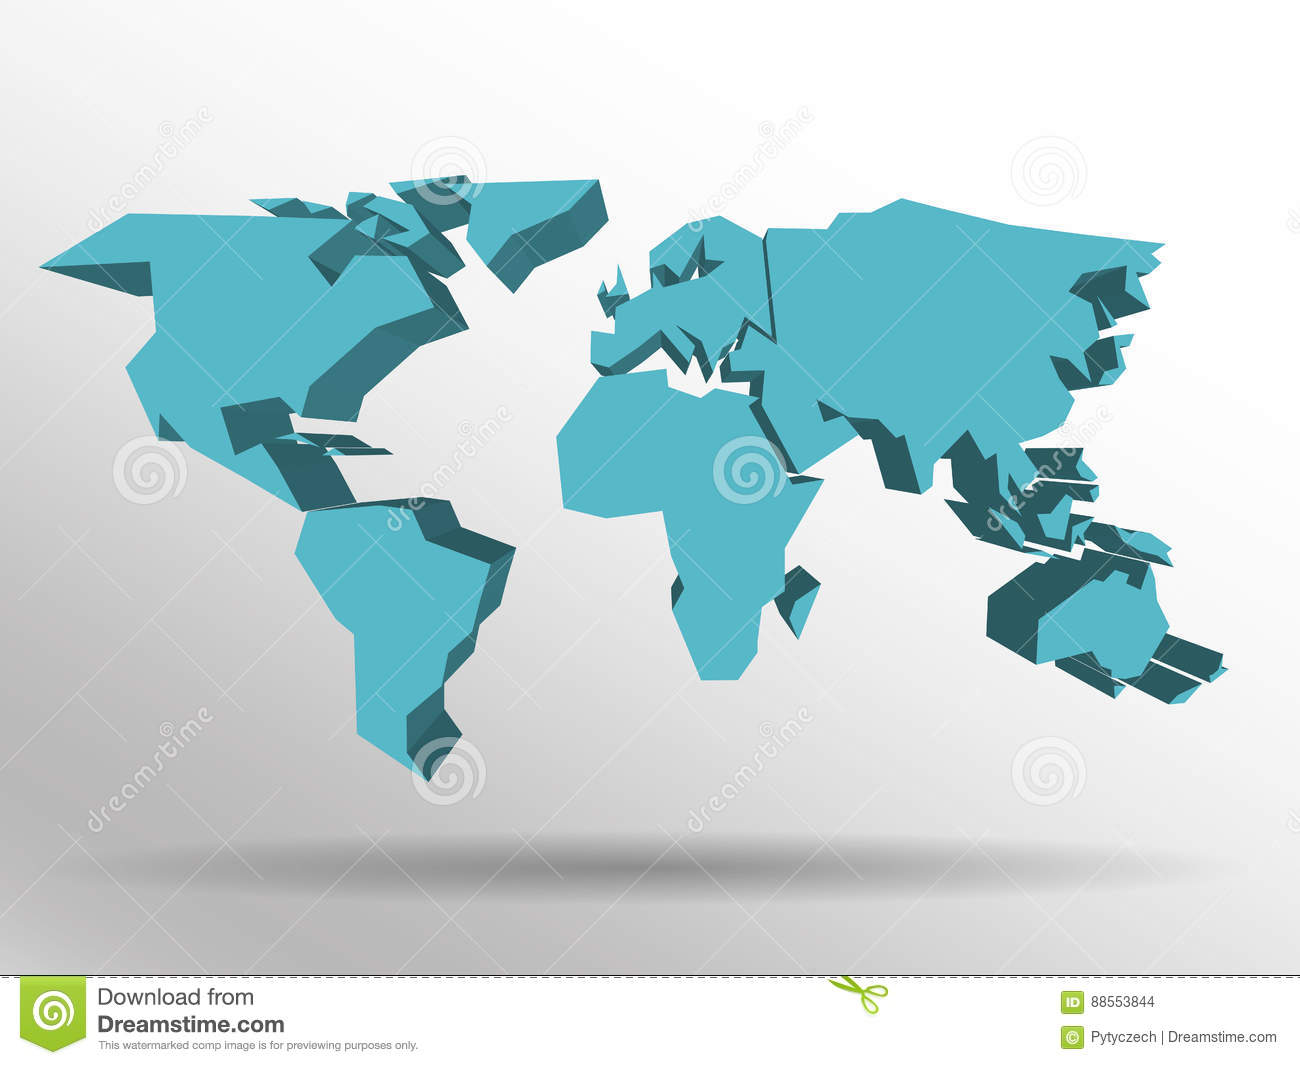 Blue 3d map of world with dropped shadow on background worldwide blue 3d map of world with dropped shadow on background worldwide theme wallpaper rendered three dimensional eps10 gumiabroncs Gallery